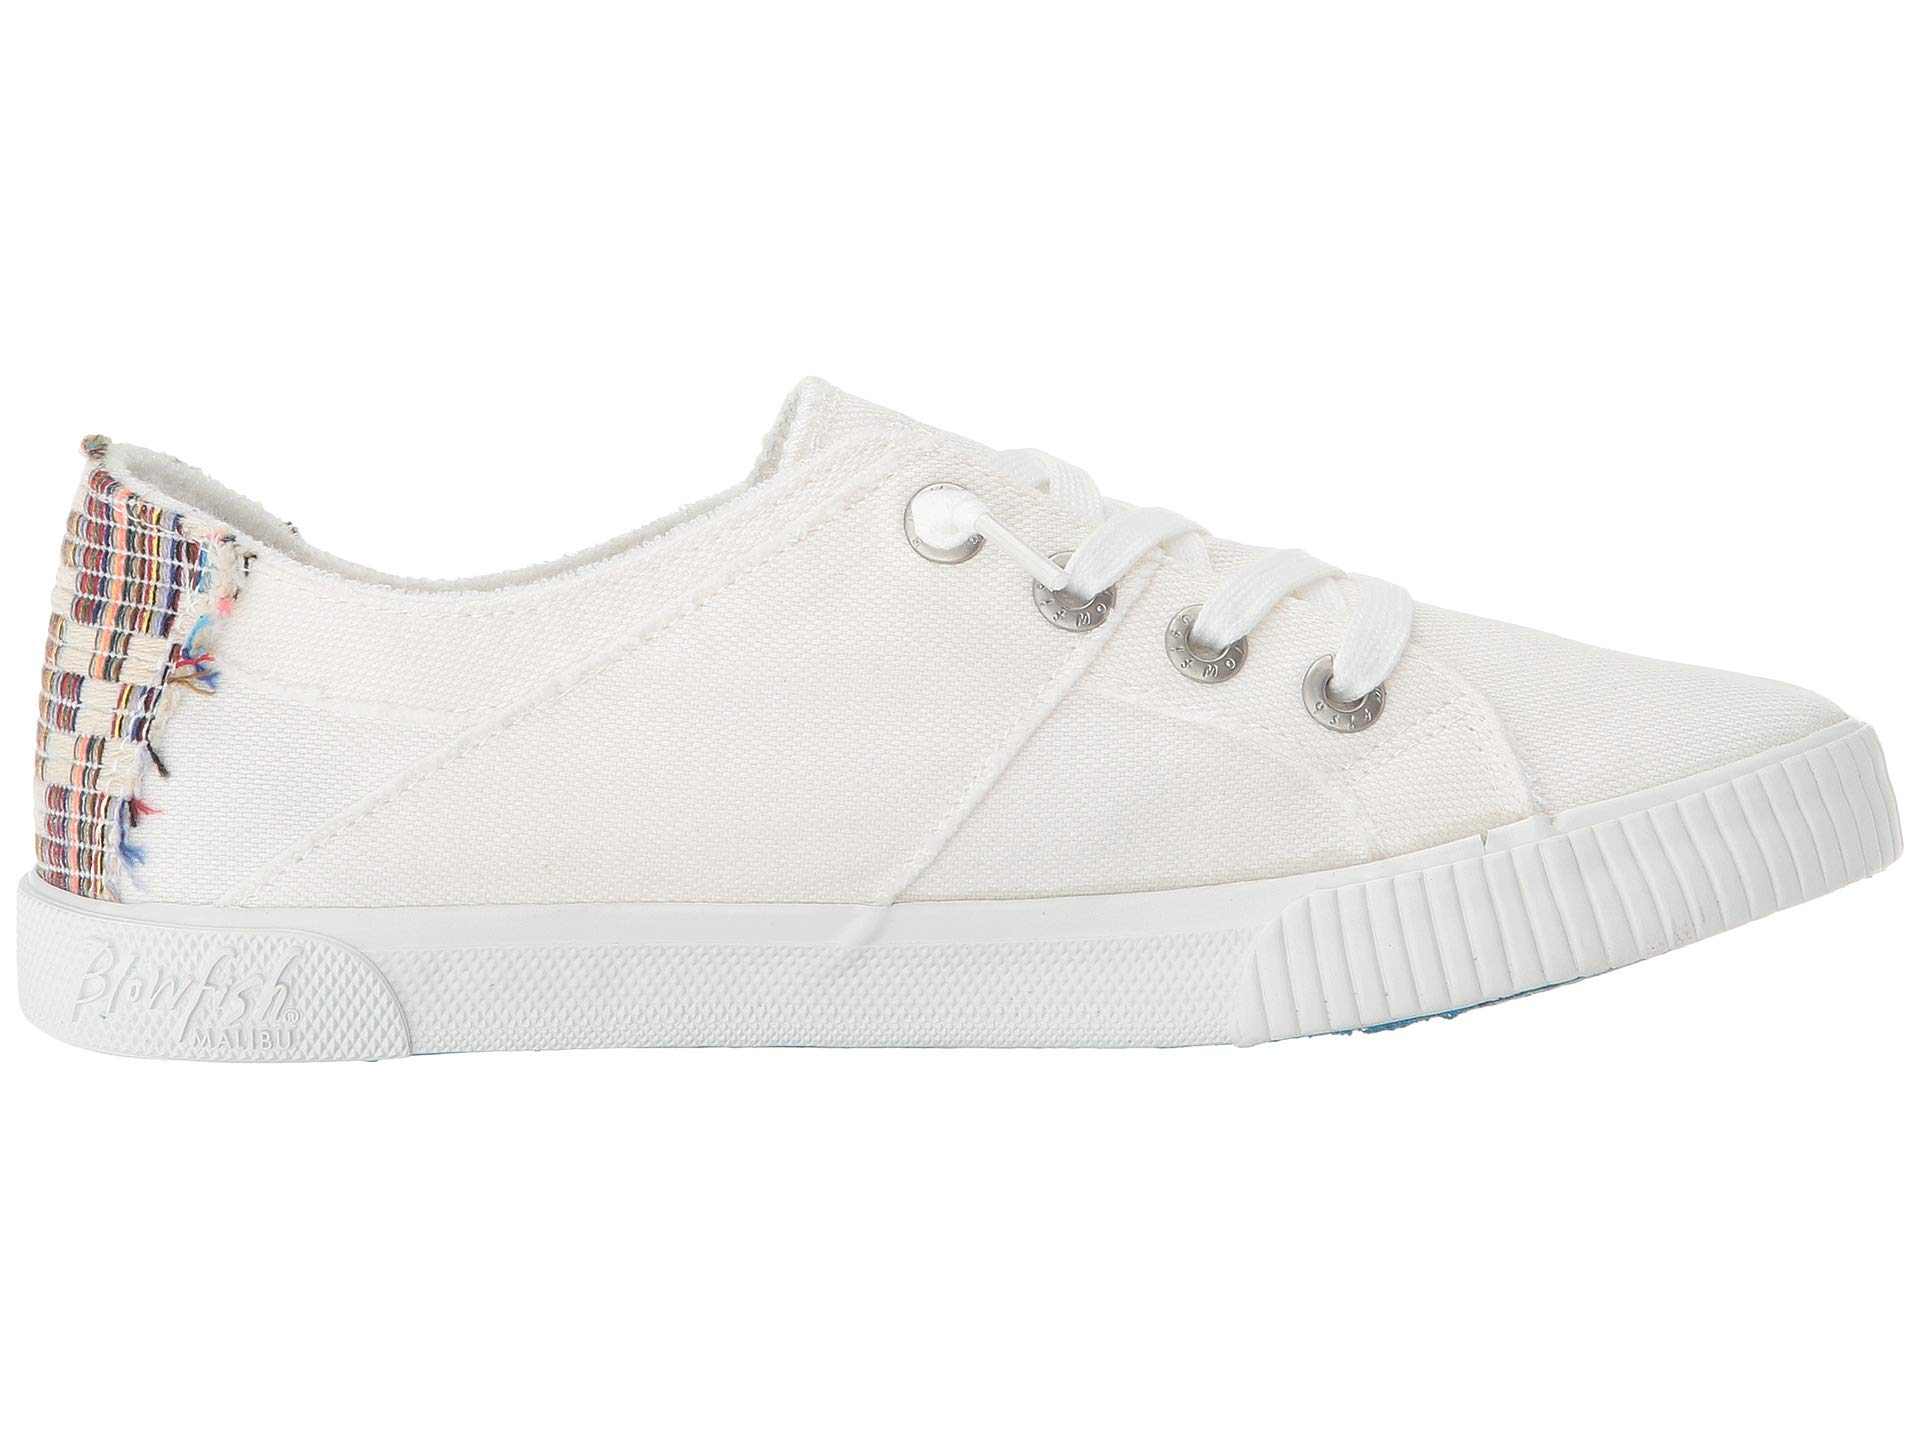 Blowfish-Womens-Fruit-Slip-On-Sneakers